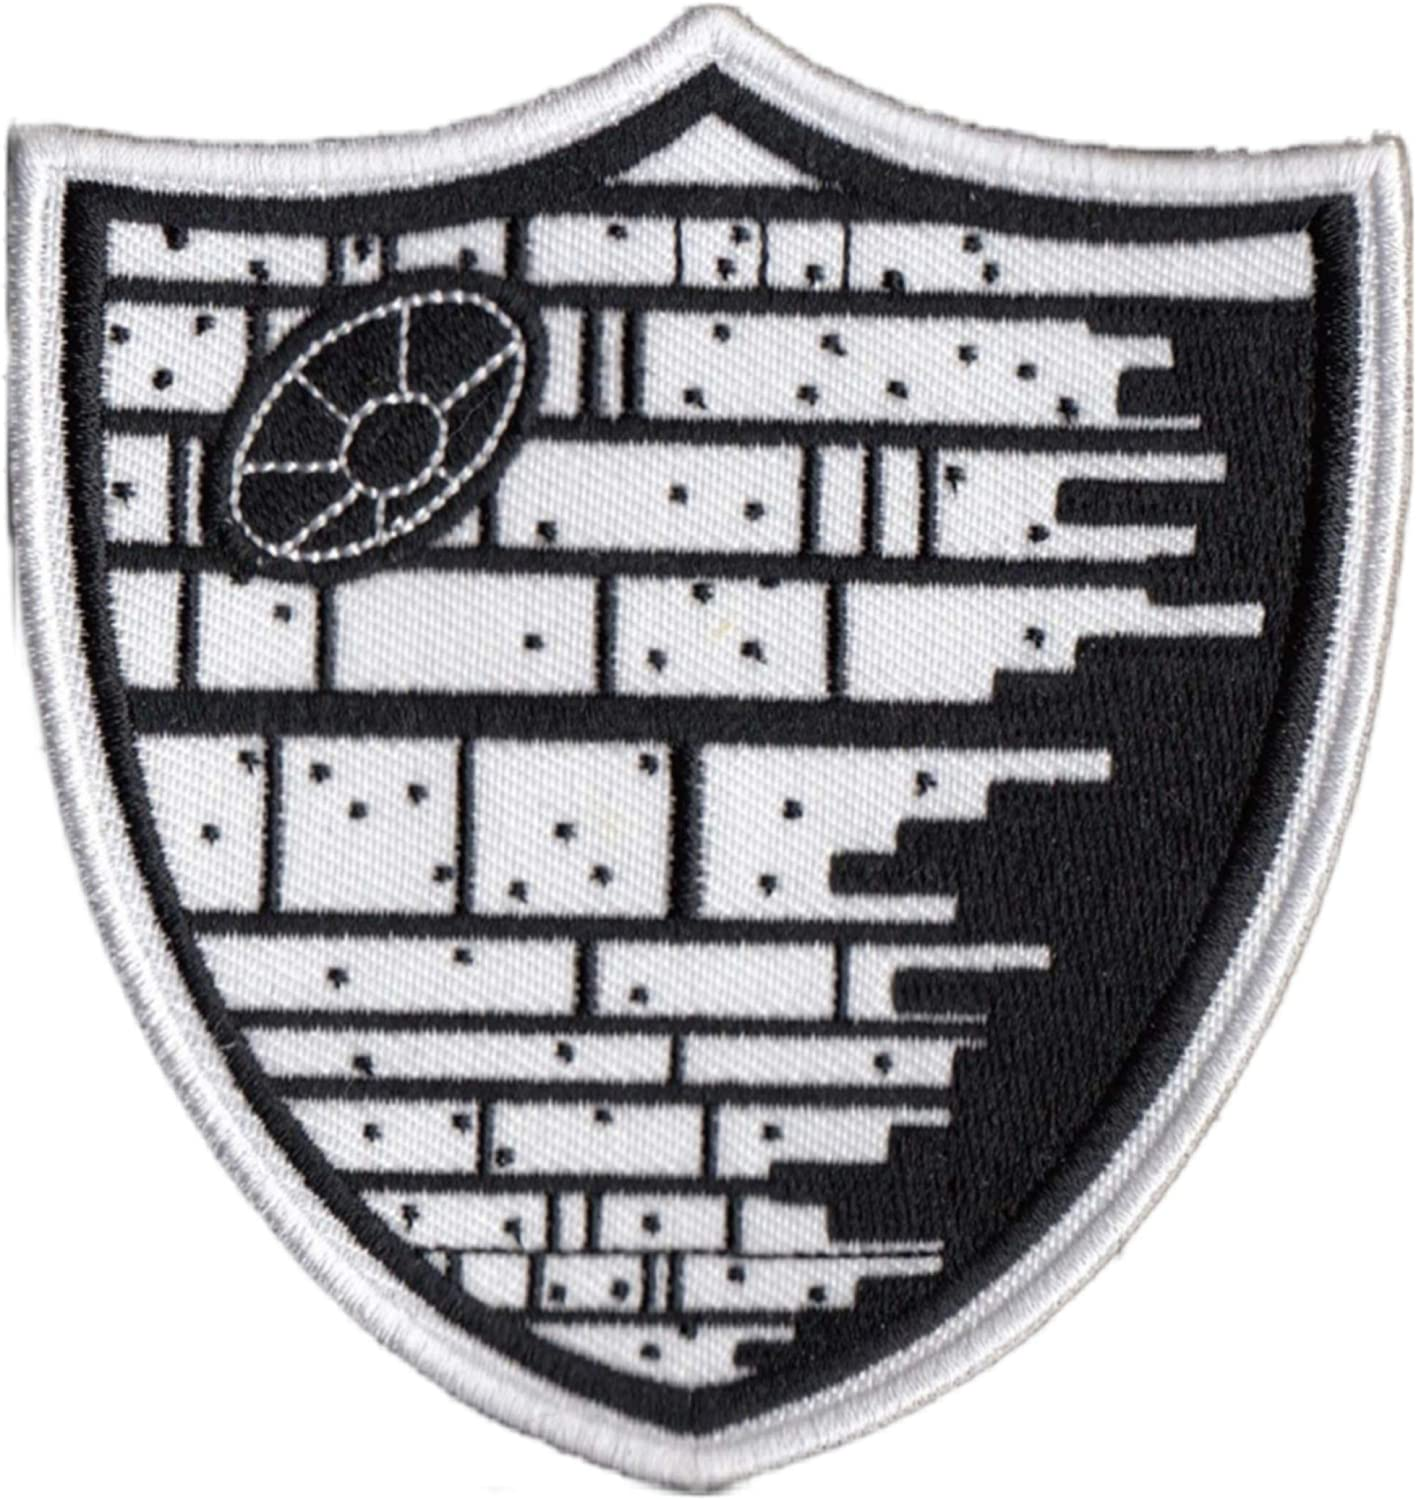 Las Vegas Death Star Patch Raiders Patches